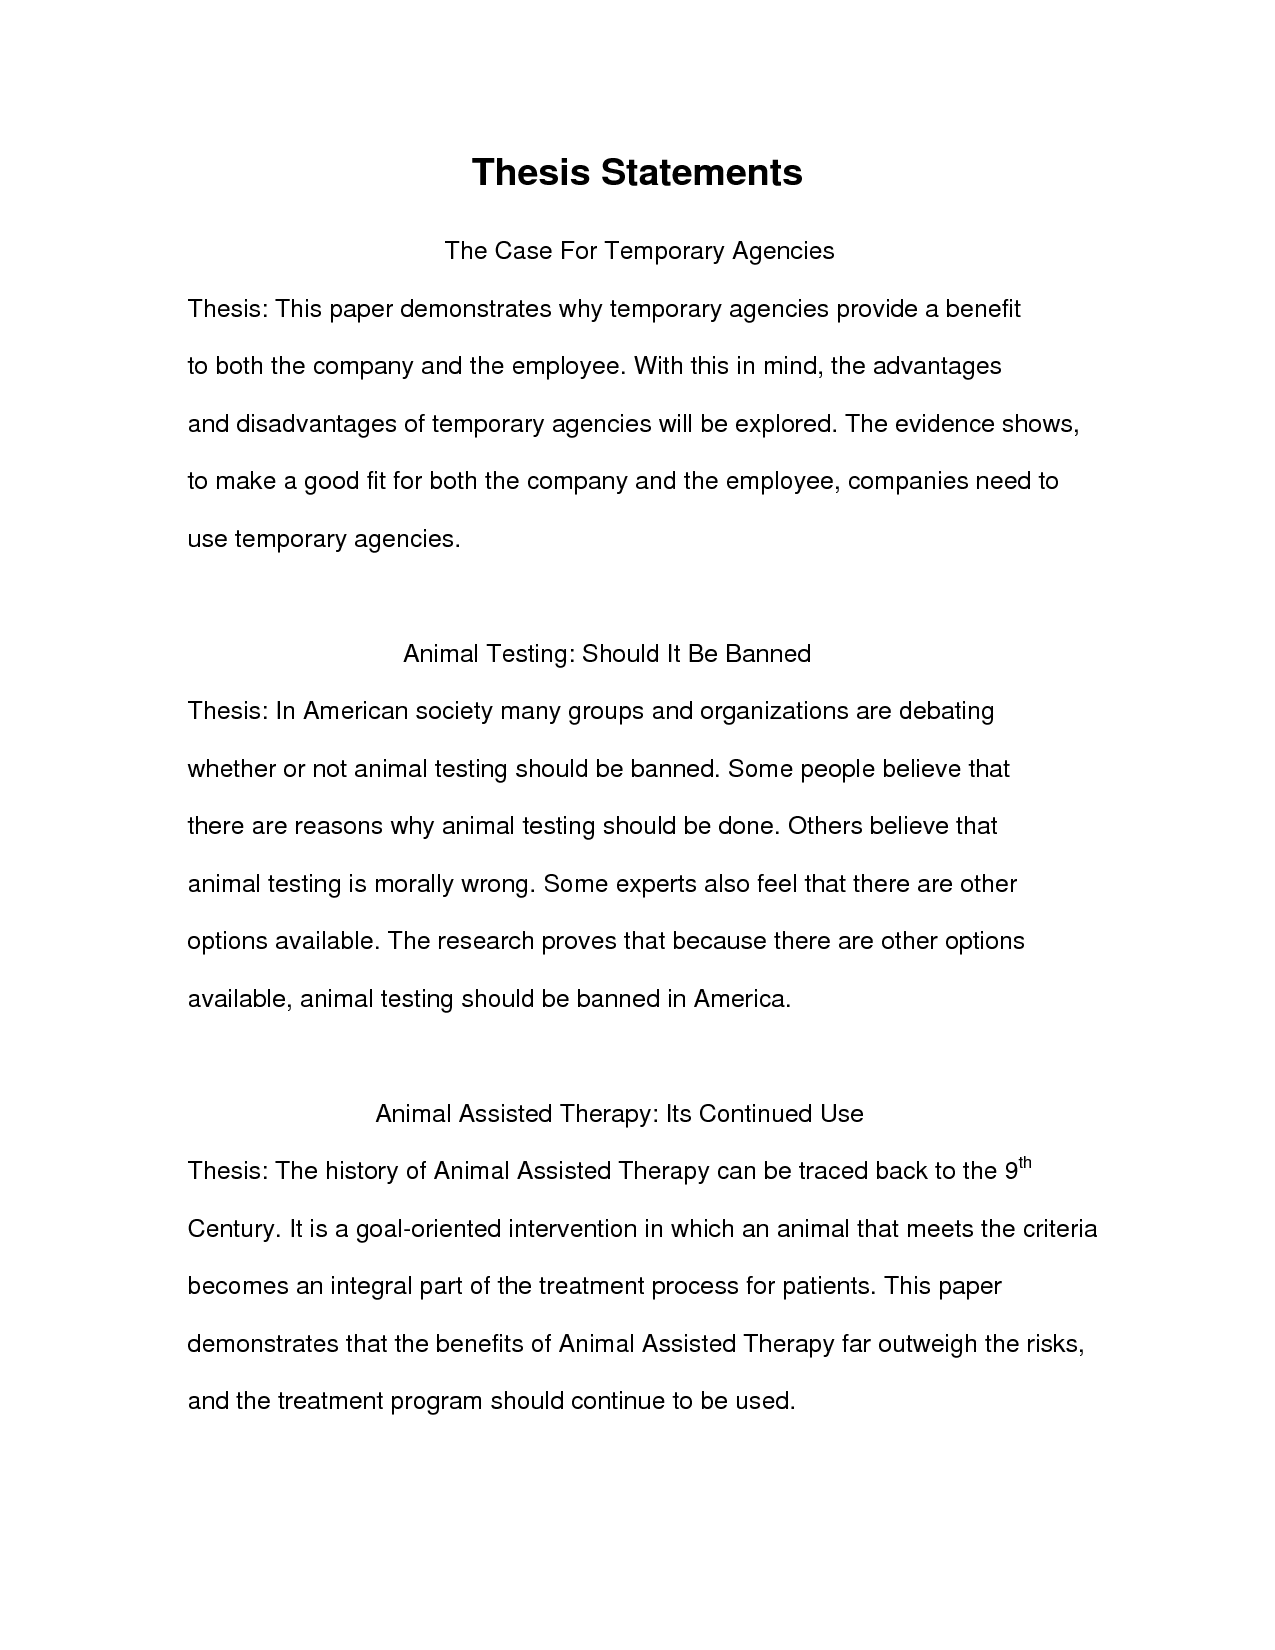 006 Example Essay Thesis Statement Examplesch Paper Of Statements For Expository Essays Comparative On Cosmetic Surgery Good Narrative Informative Compare And Contrast College Argumentative Fantastic An A Research Full